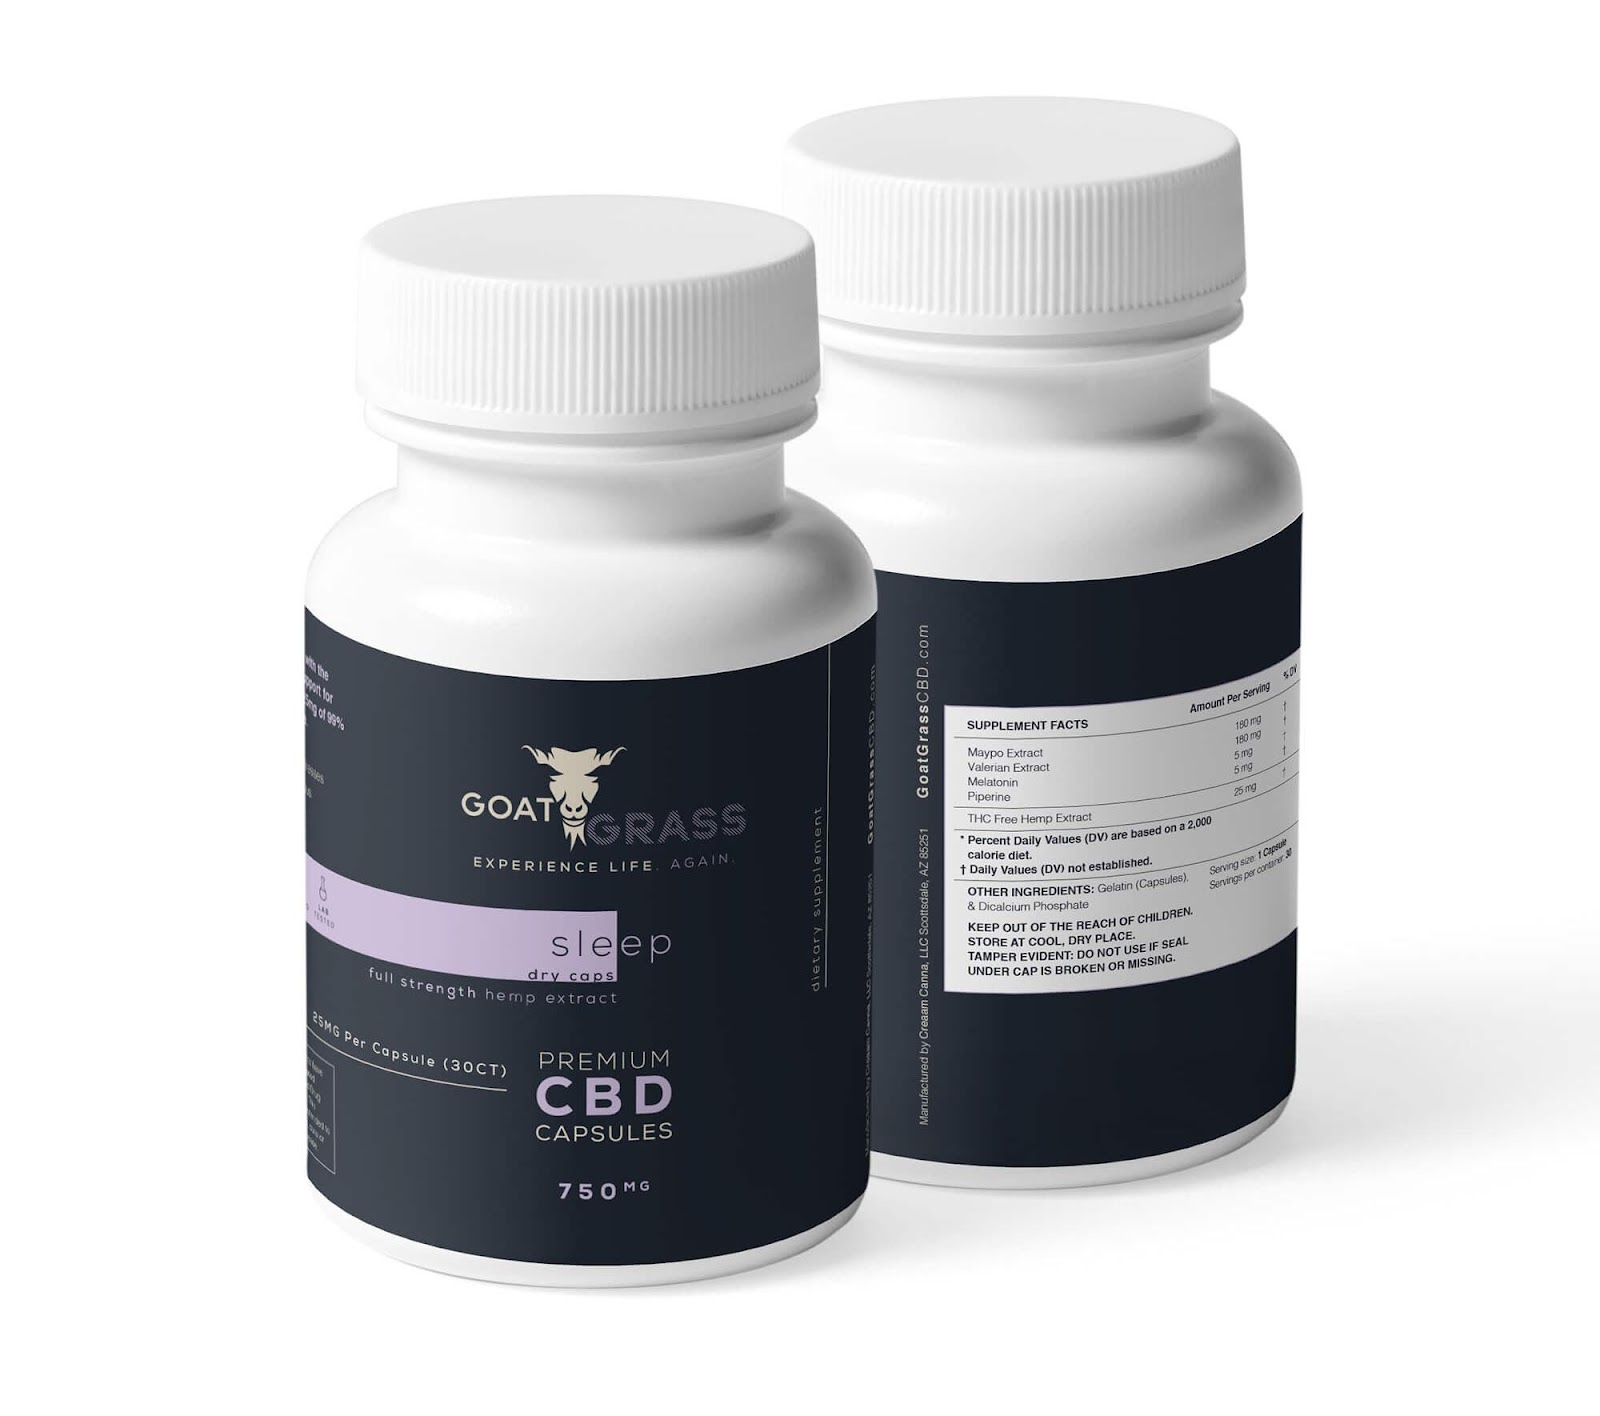 CBD Capsules, CBD Pills, Sleep Pills, Goat Grass CBD, Can CBD Help Sleep